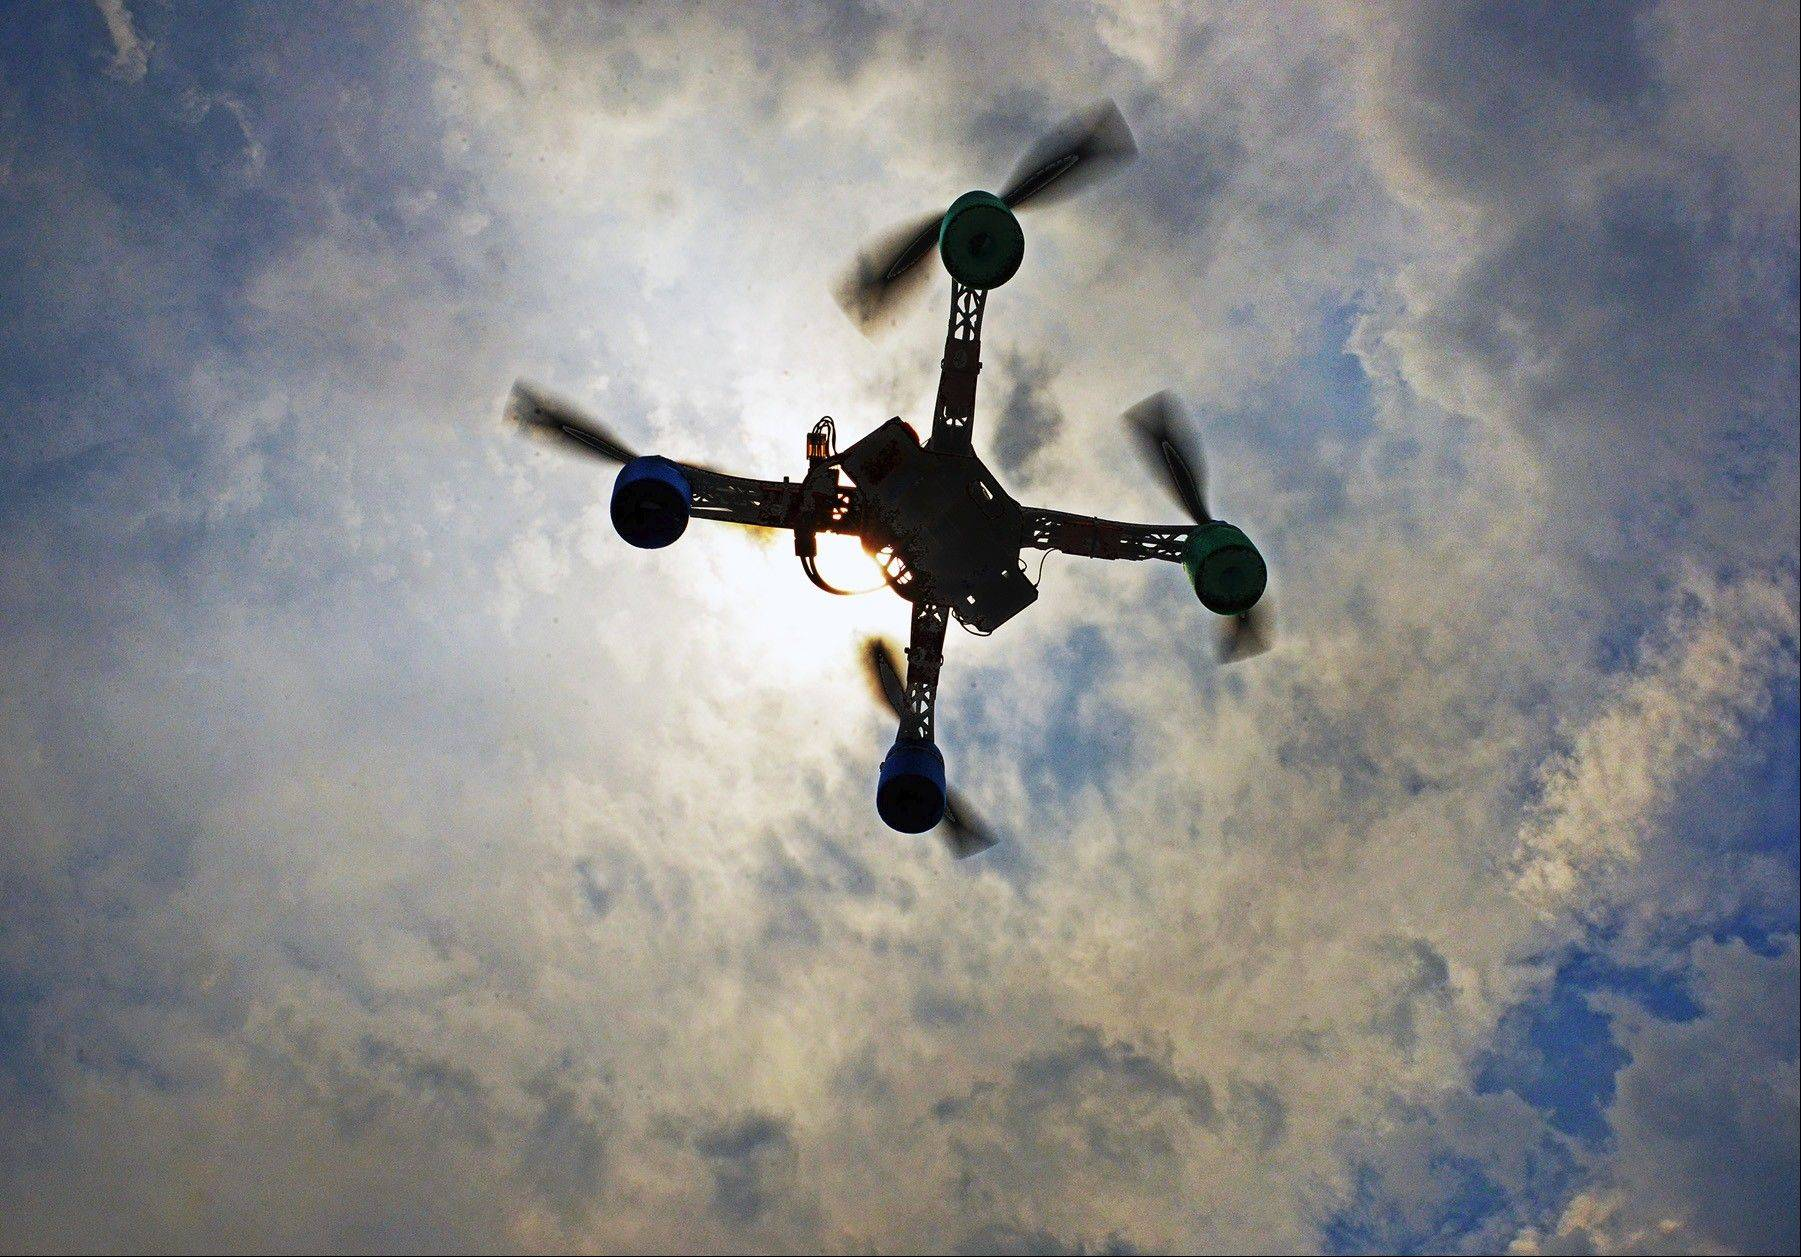 A drone of your very own: These aren't your average remote-controlled aircraft